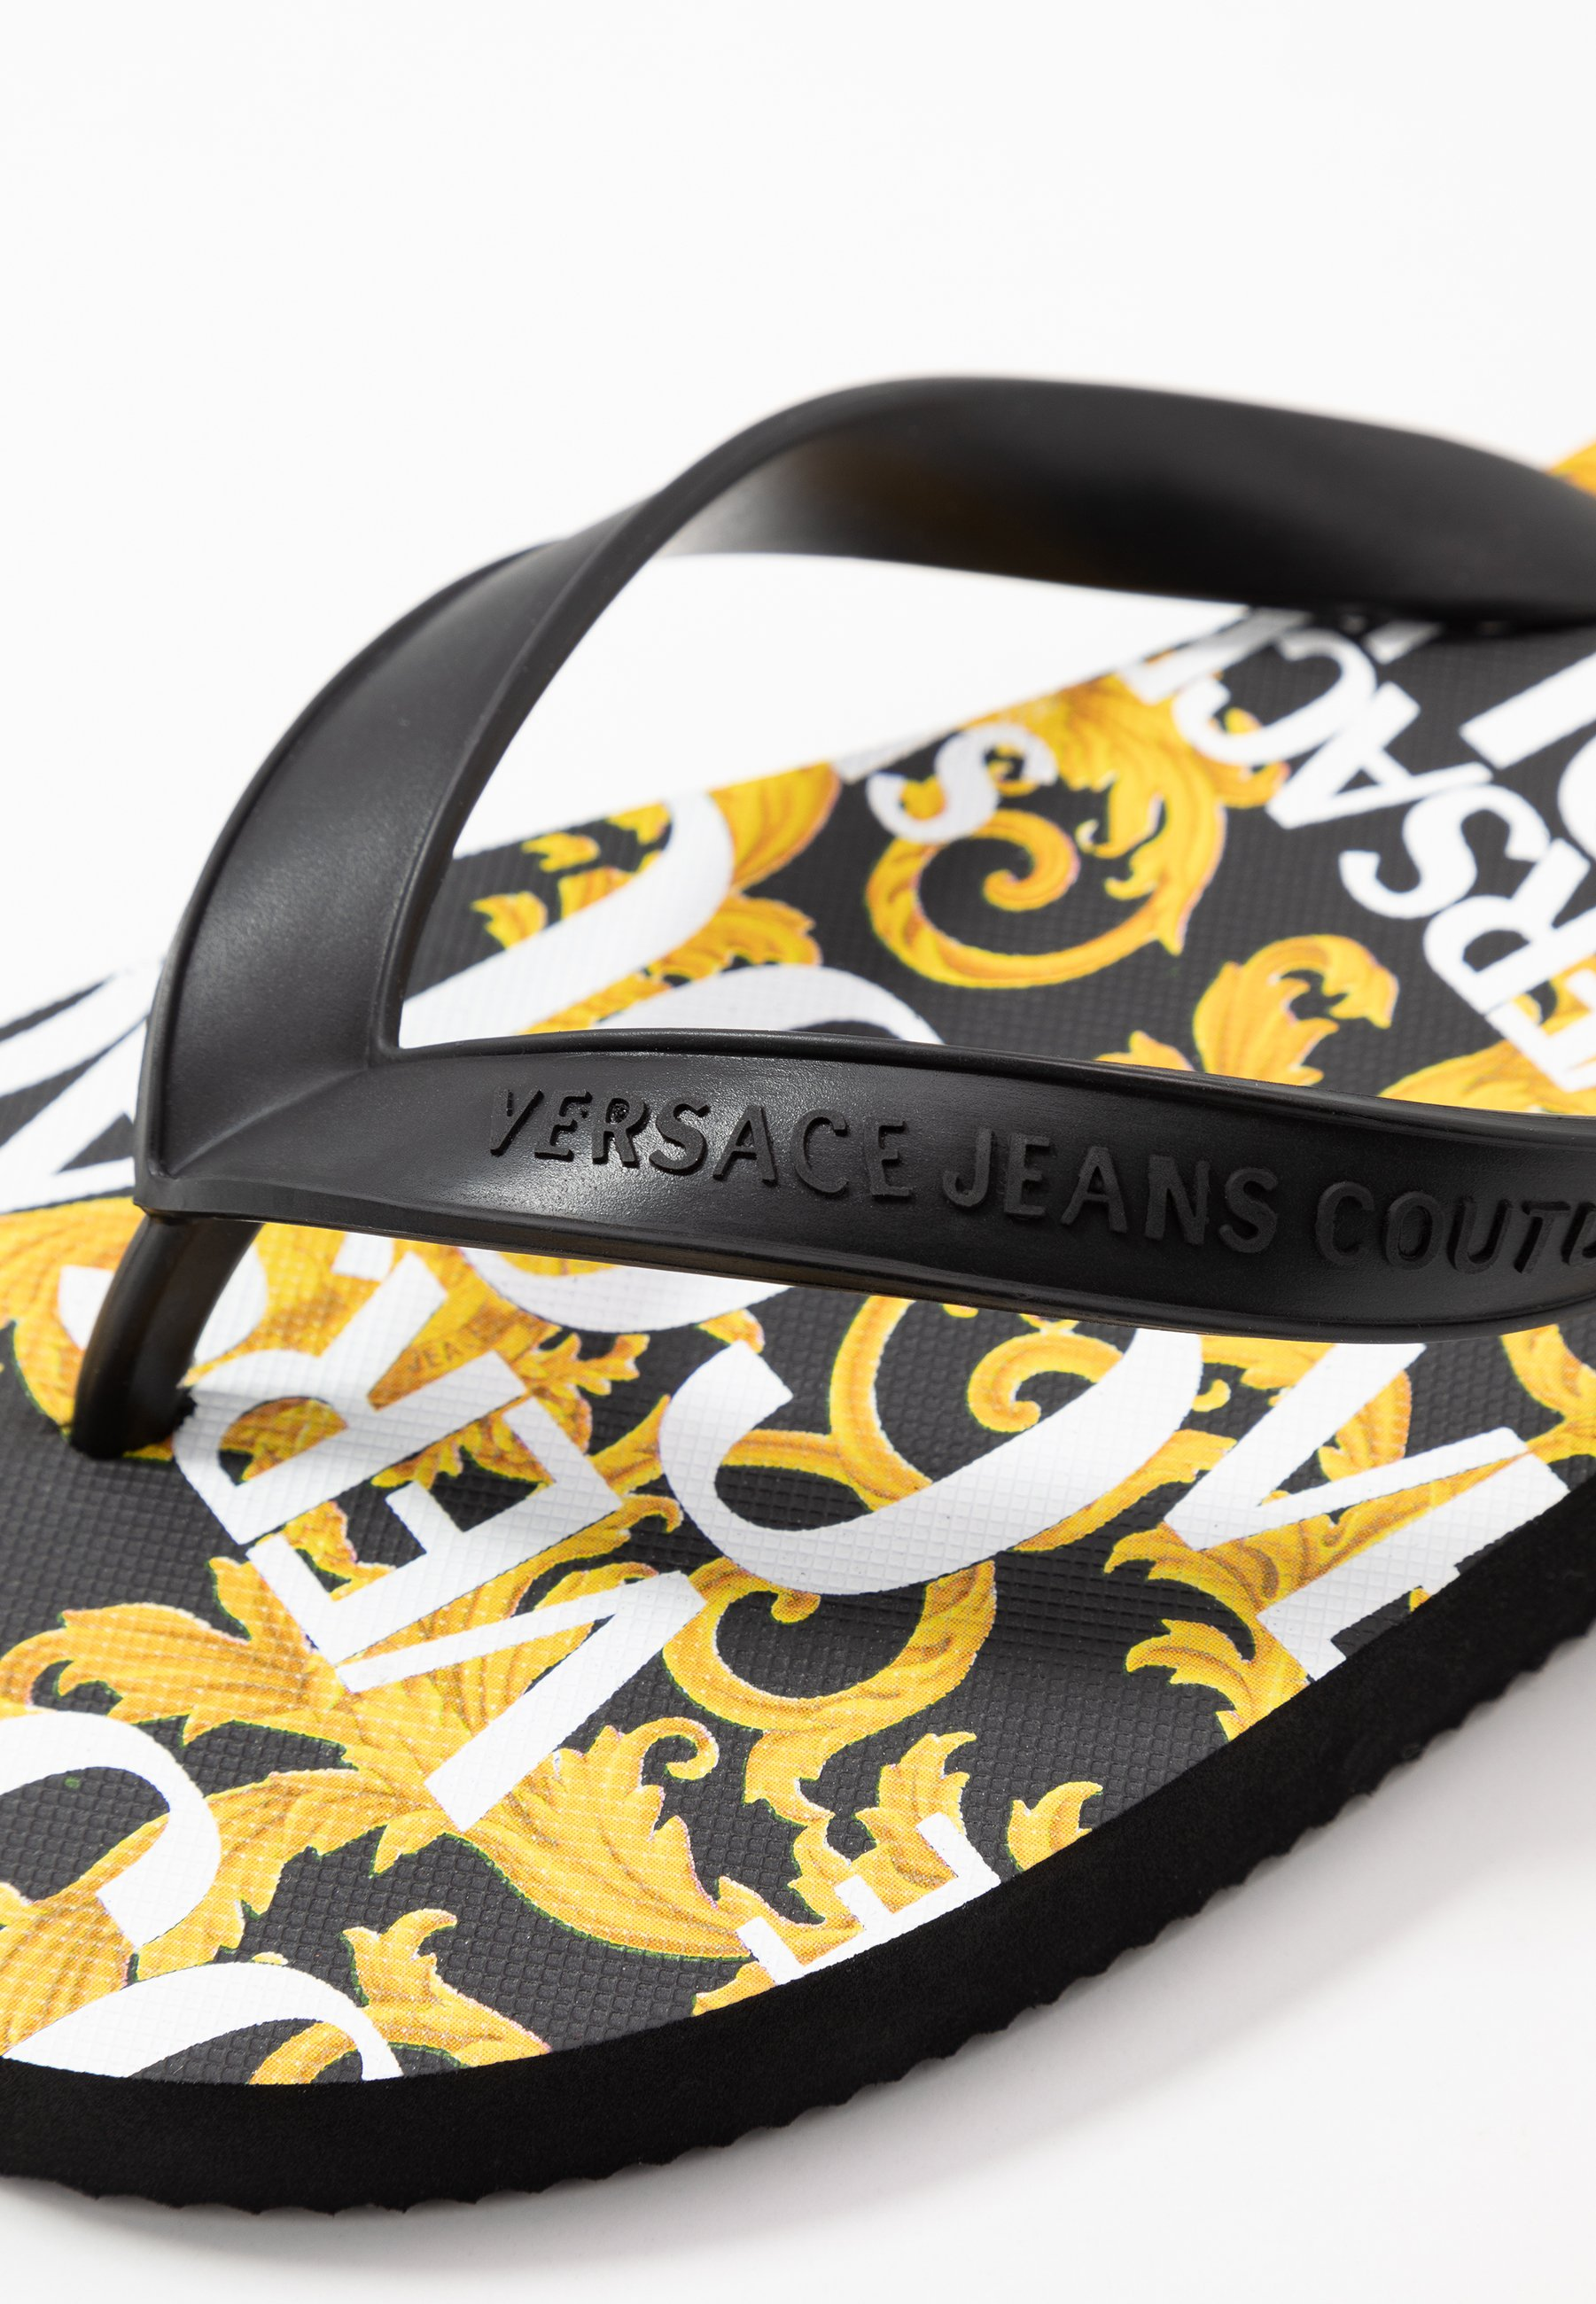 Versace Jeans Couture Tongs - Nero